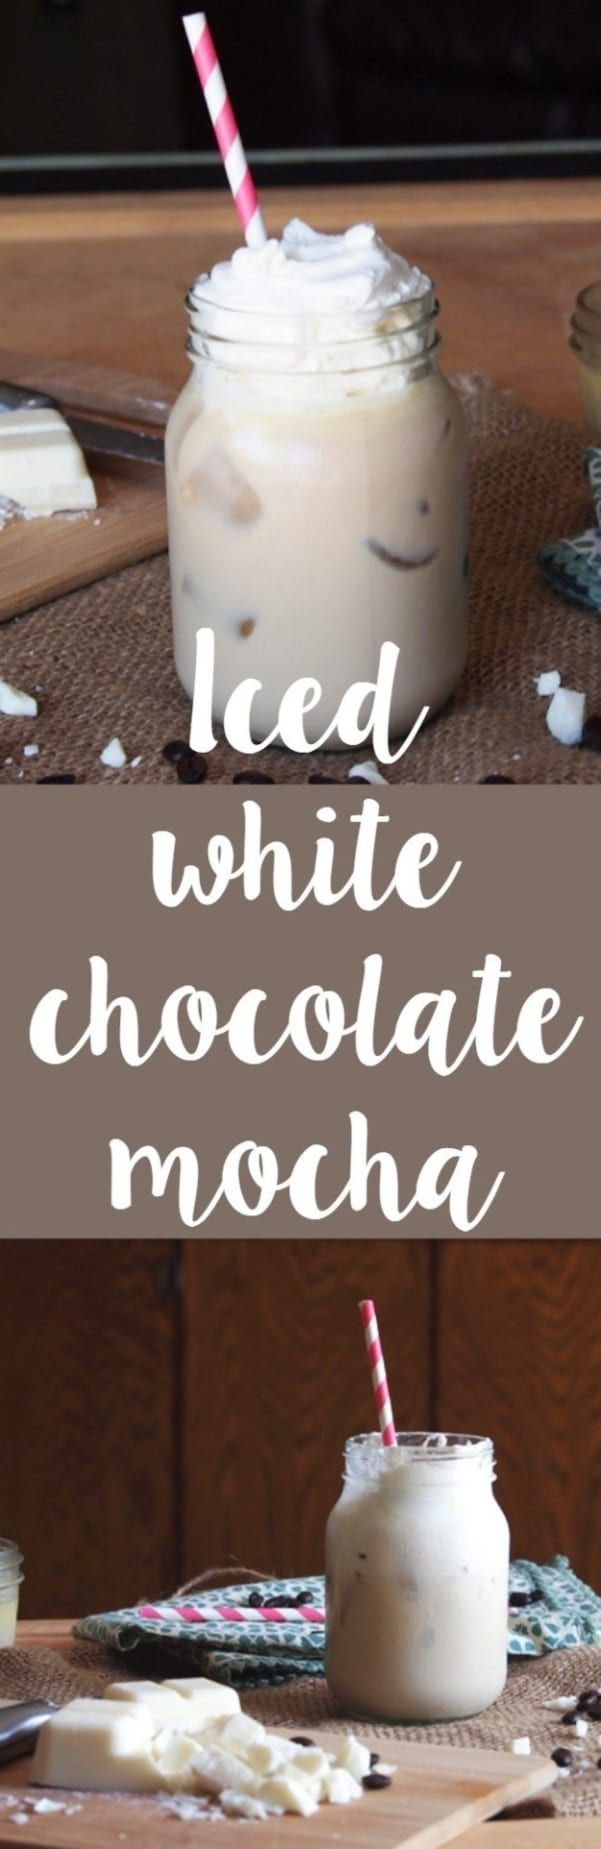 Use store-bought white chocolate sauce to satisfy your mocha craving even faster. Recipe here.